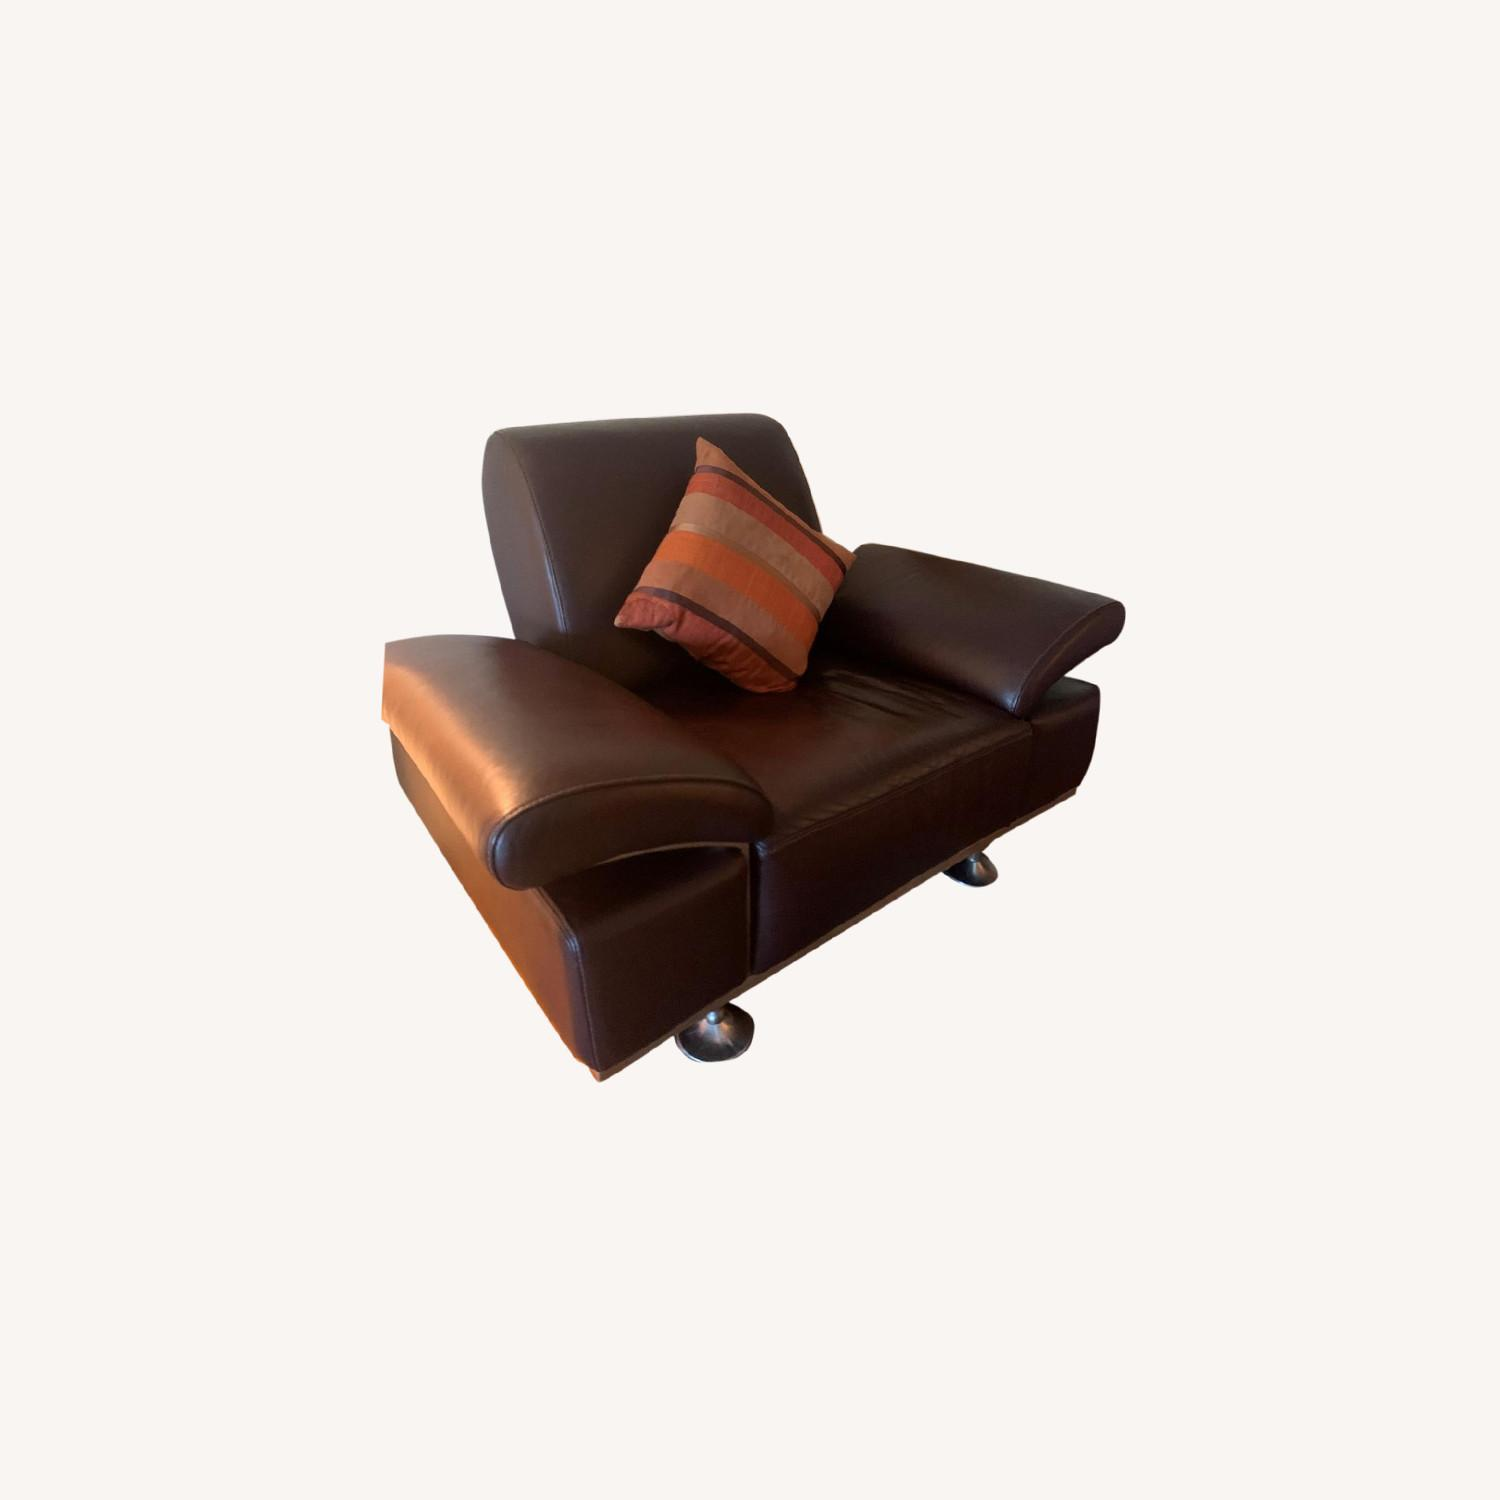 Moroni Brown Leather AccentChair - image-4